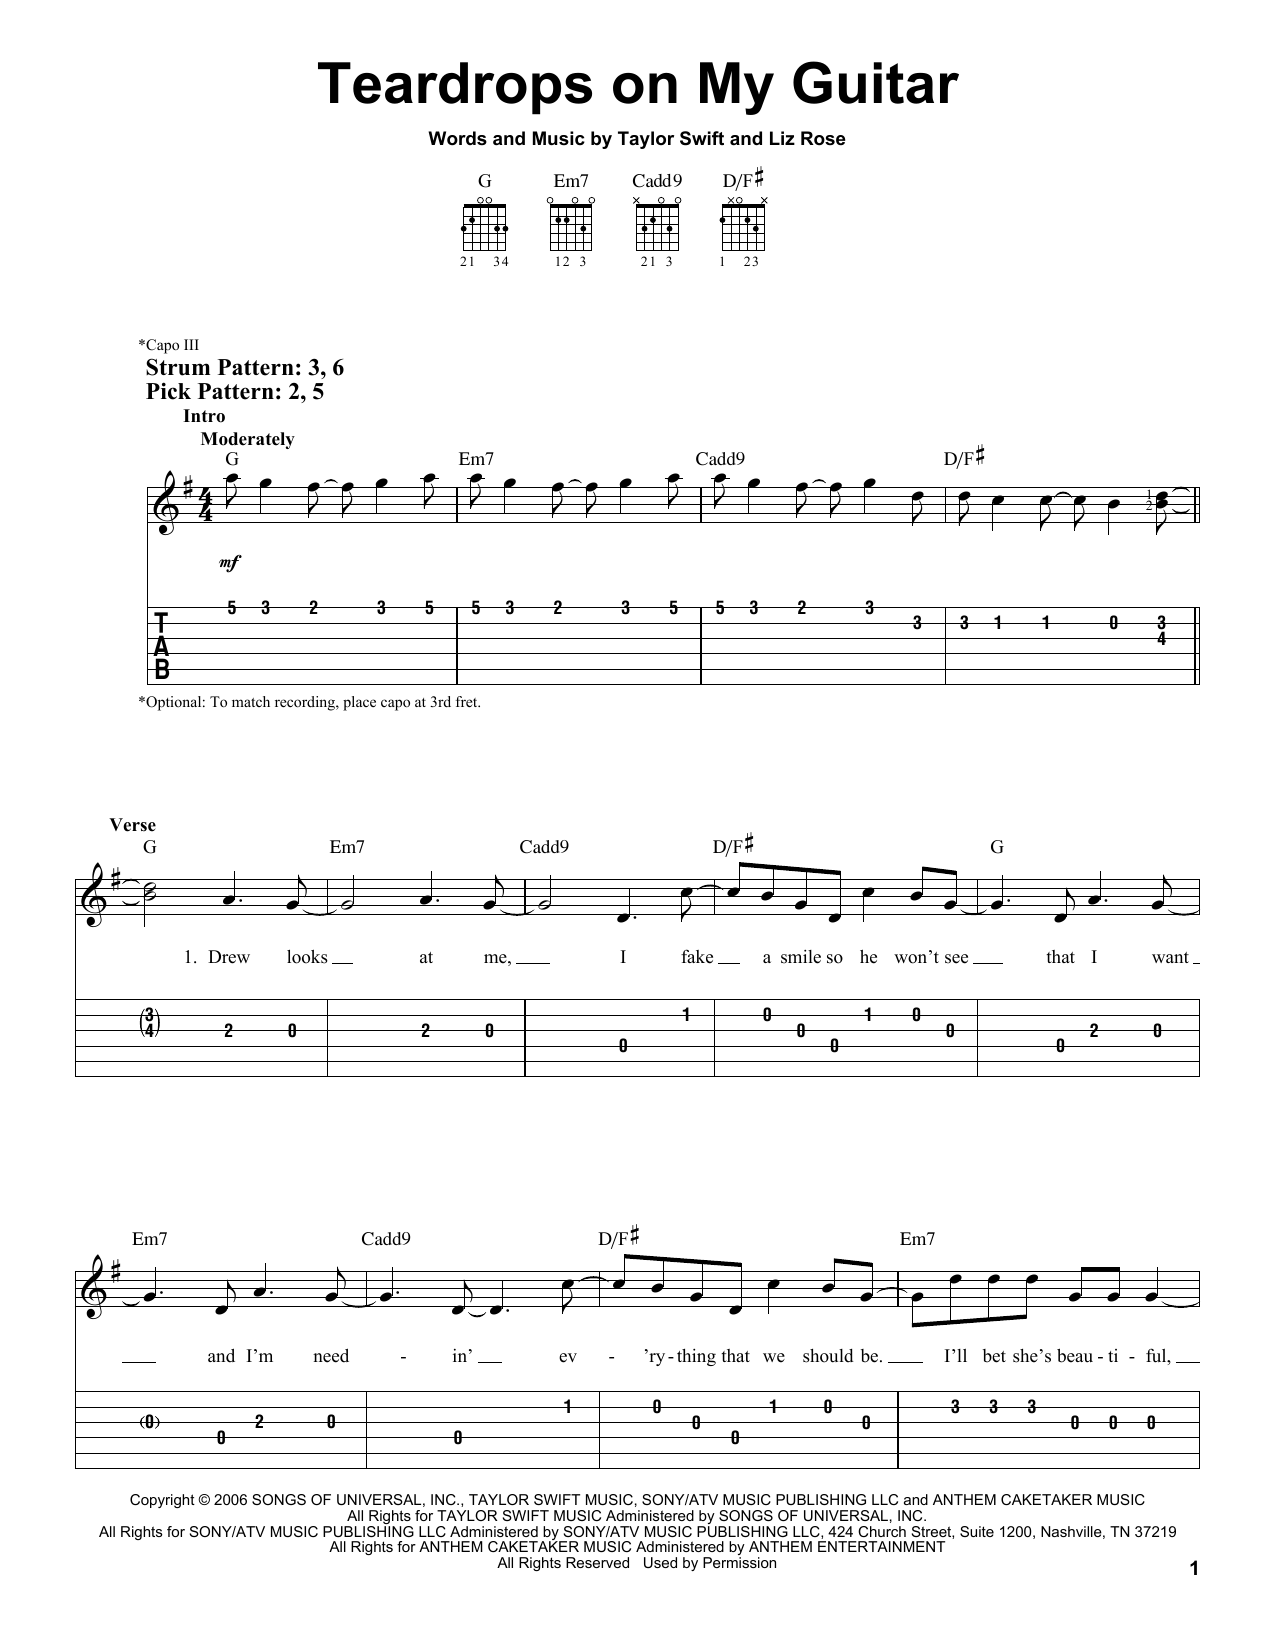 Guitar guitar tabs easy : Teardrops On My Guitar by Taylor Swift - Easy Guitar Tab - Guitar ...